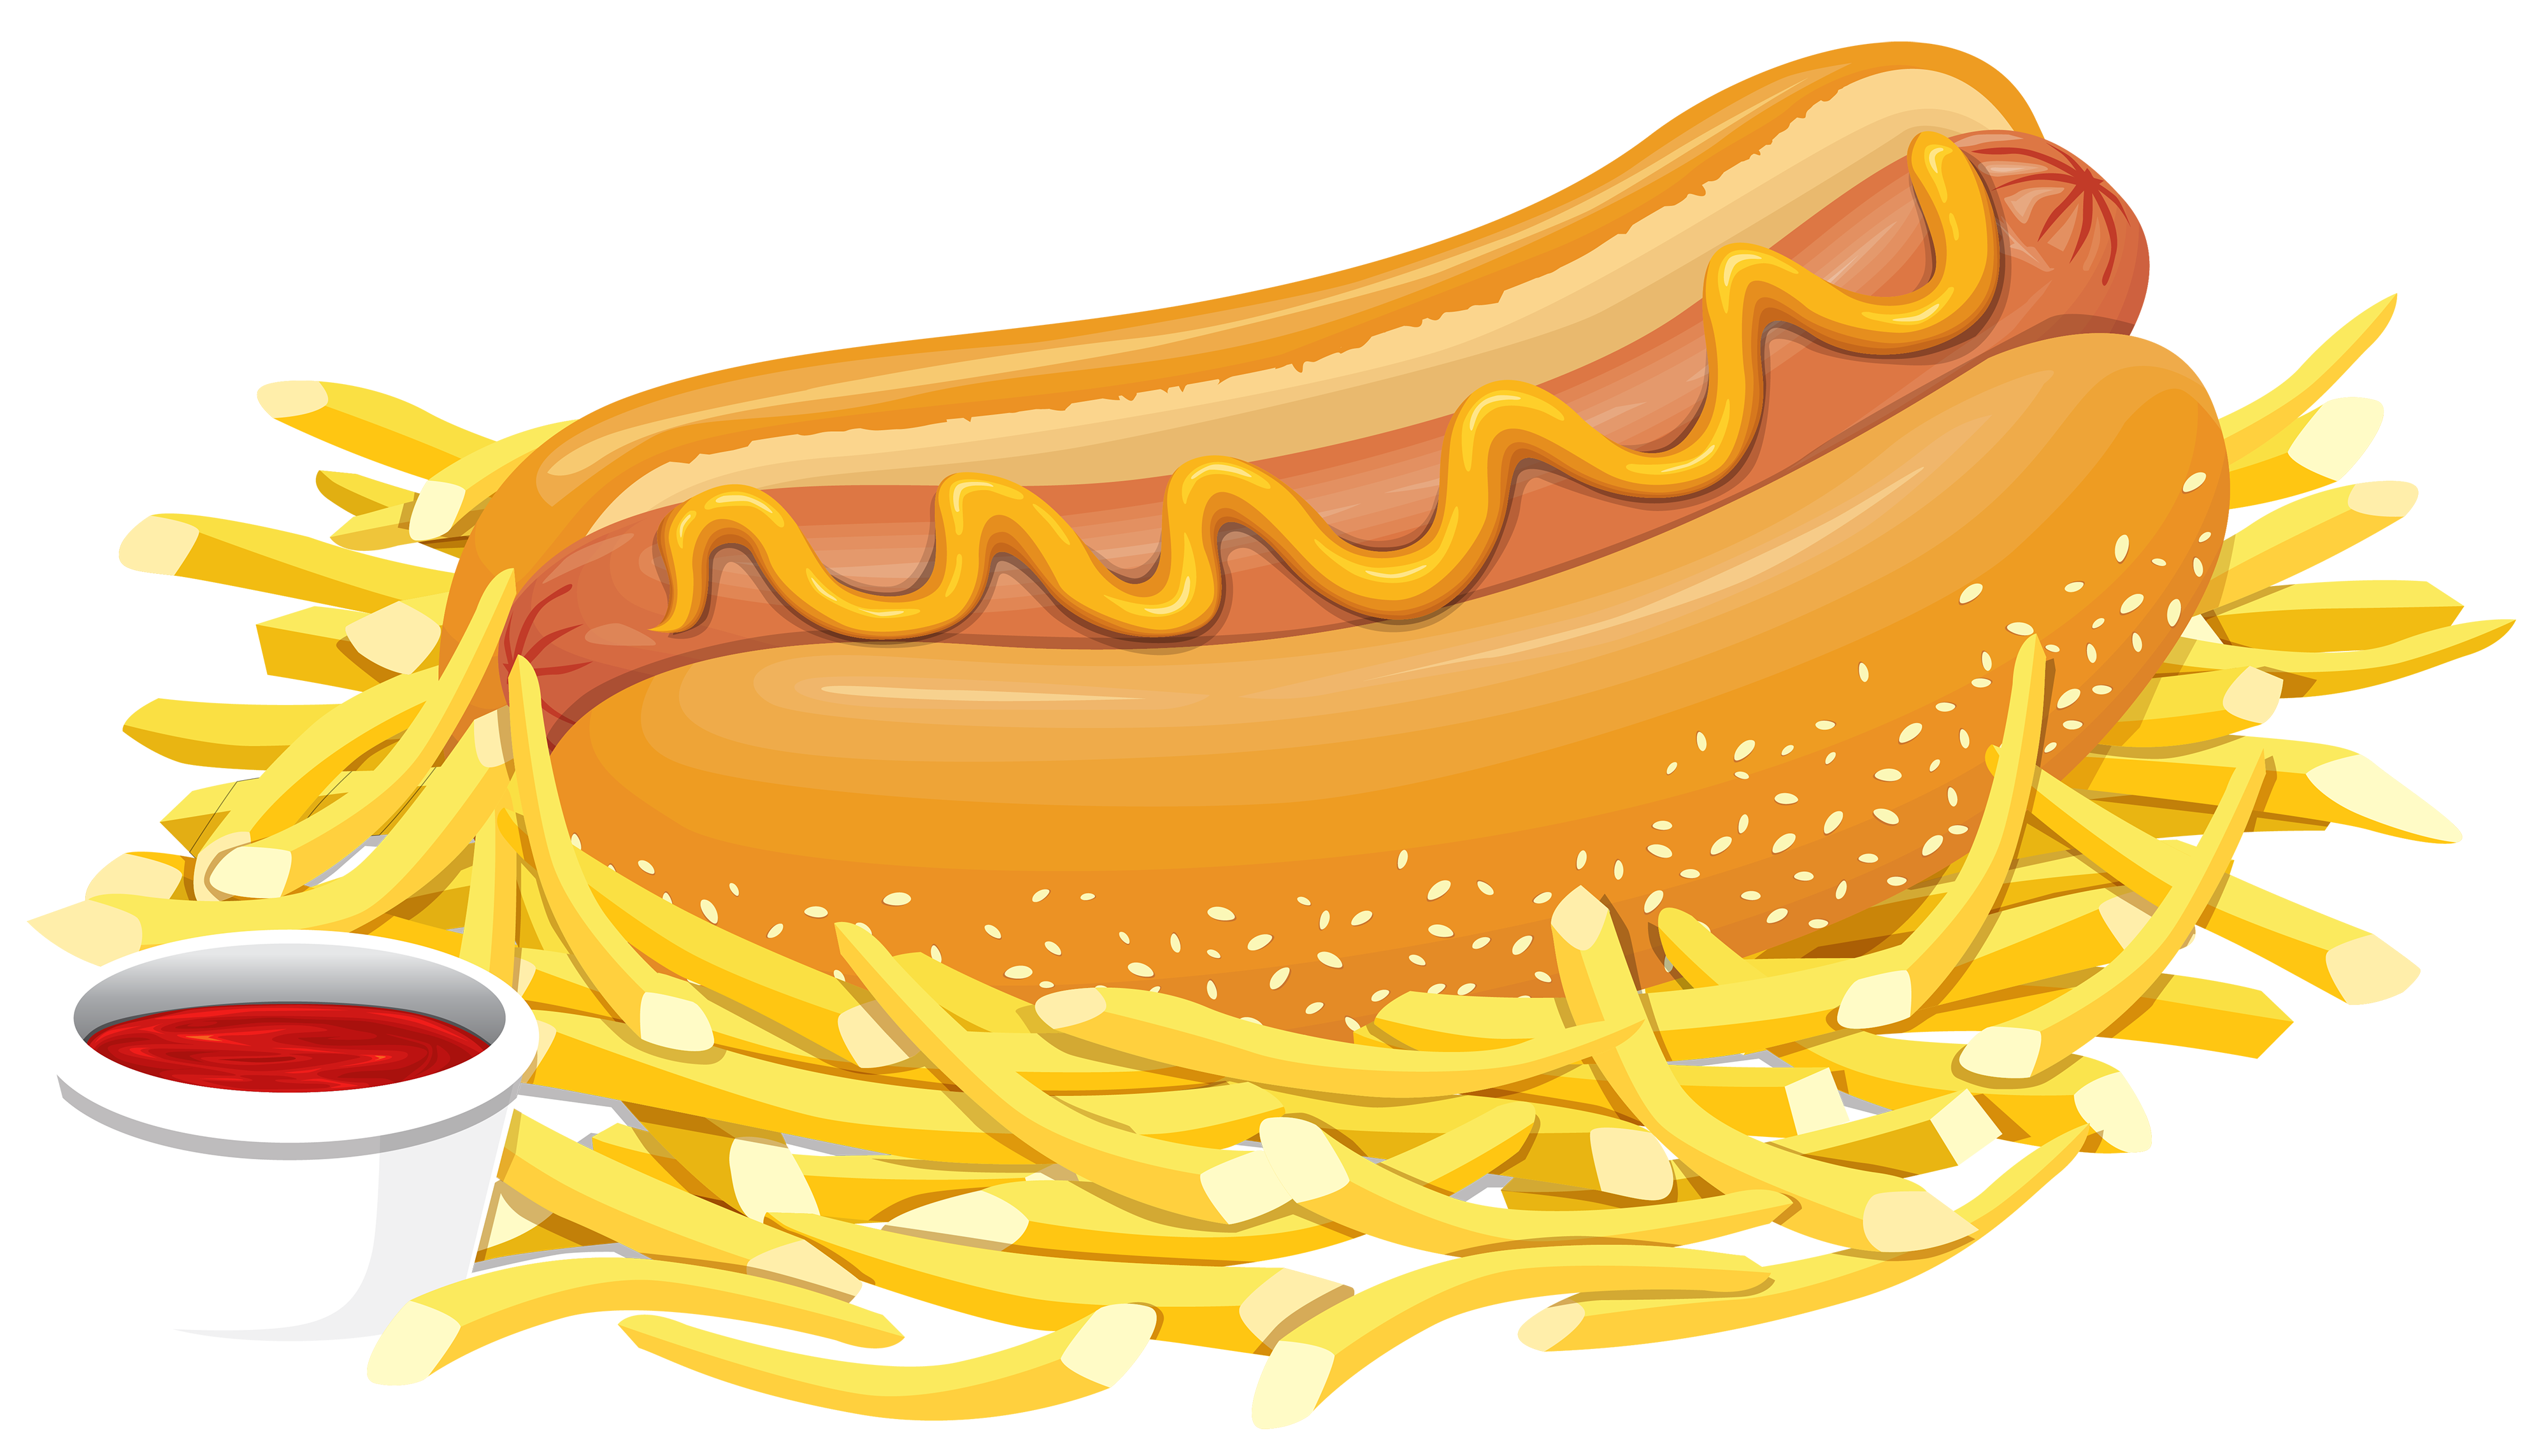 4000x2286 Hot Dog With Ketchup Png Clipart